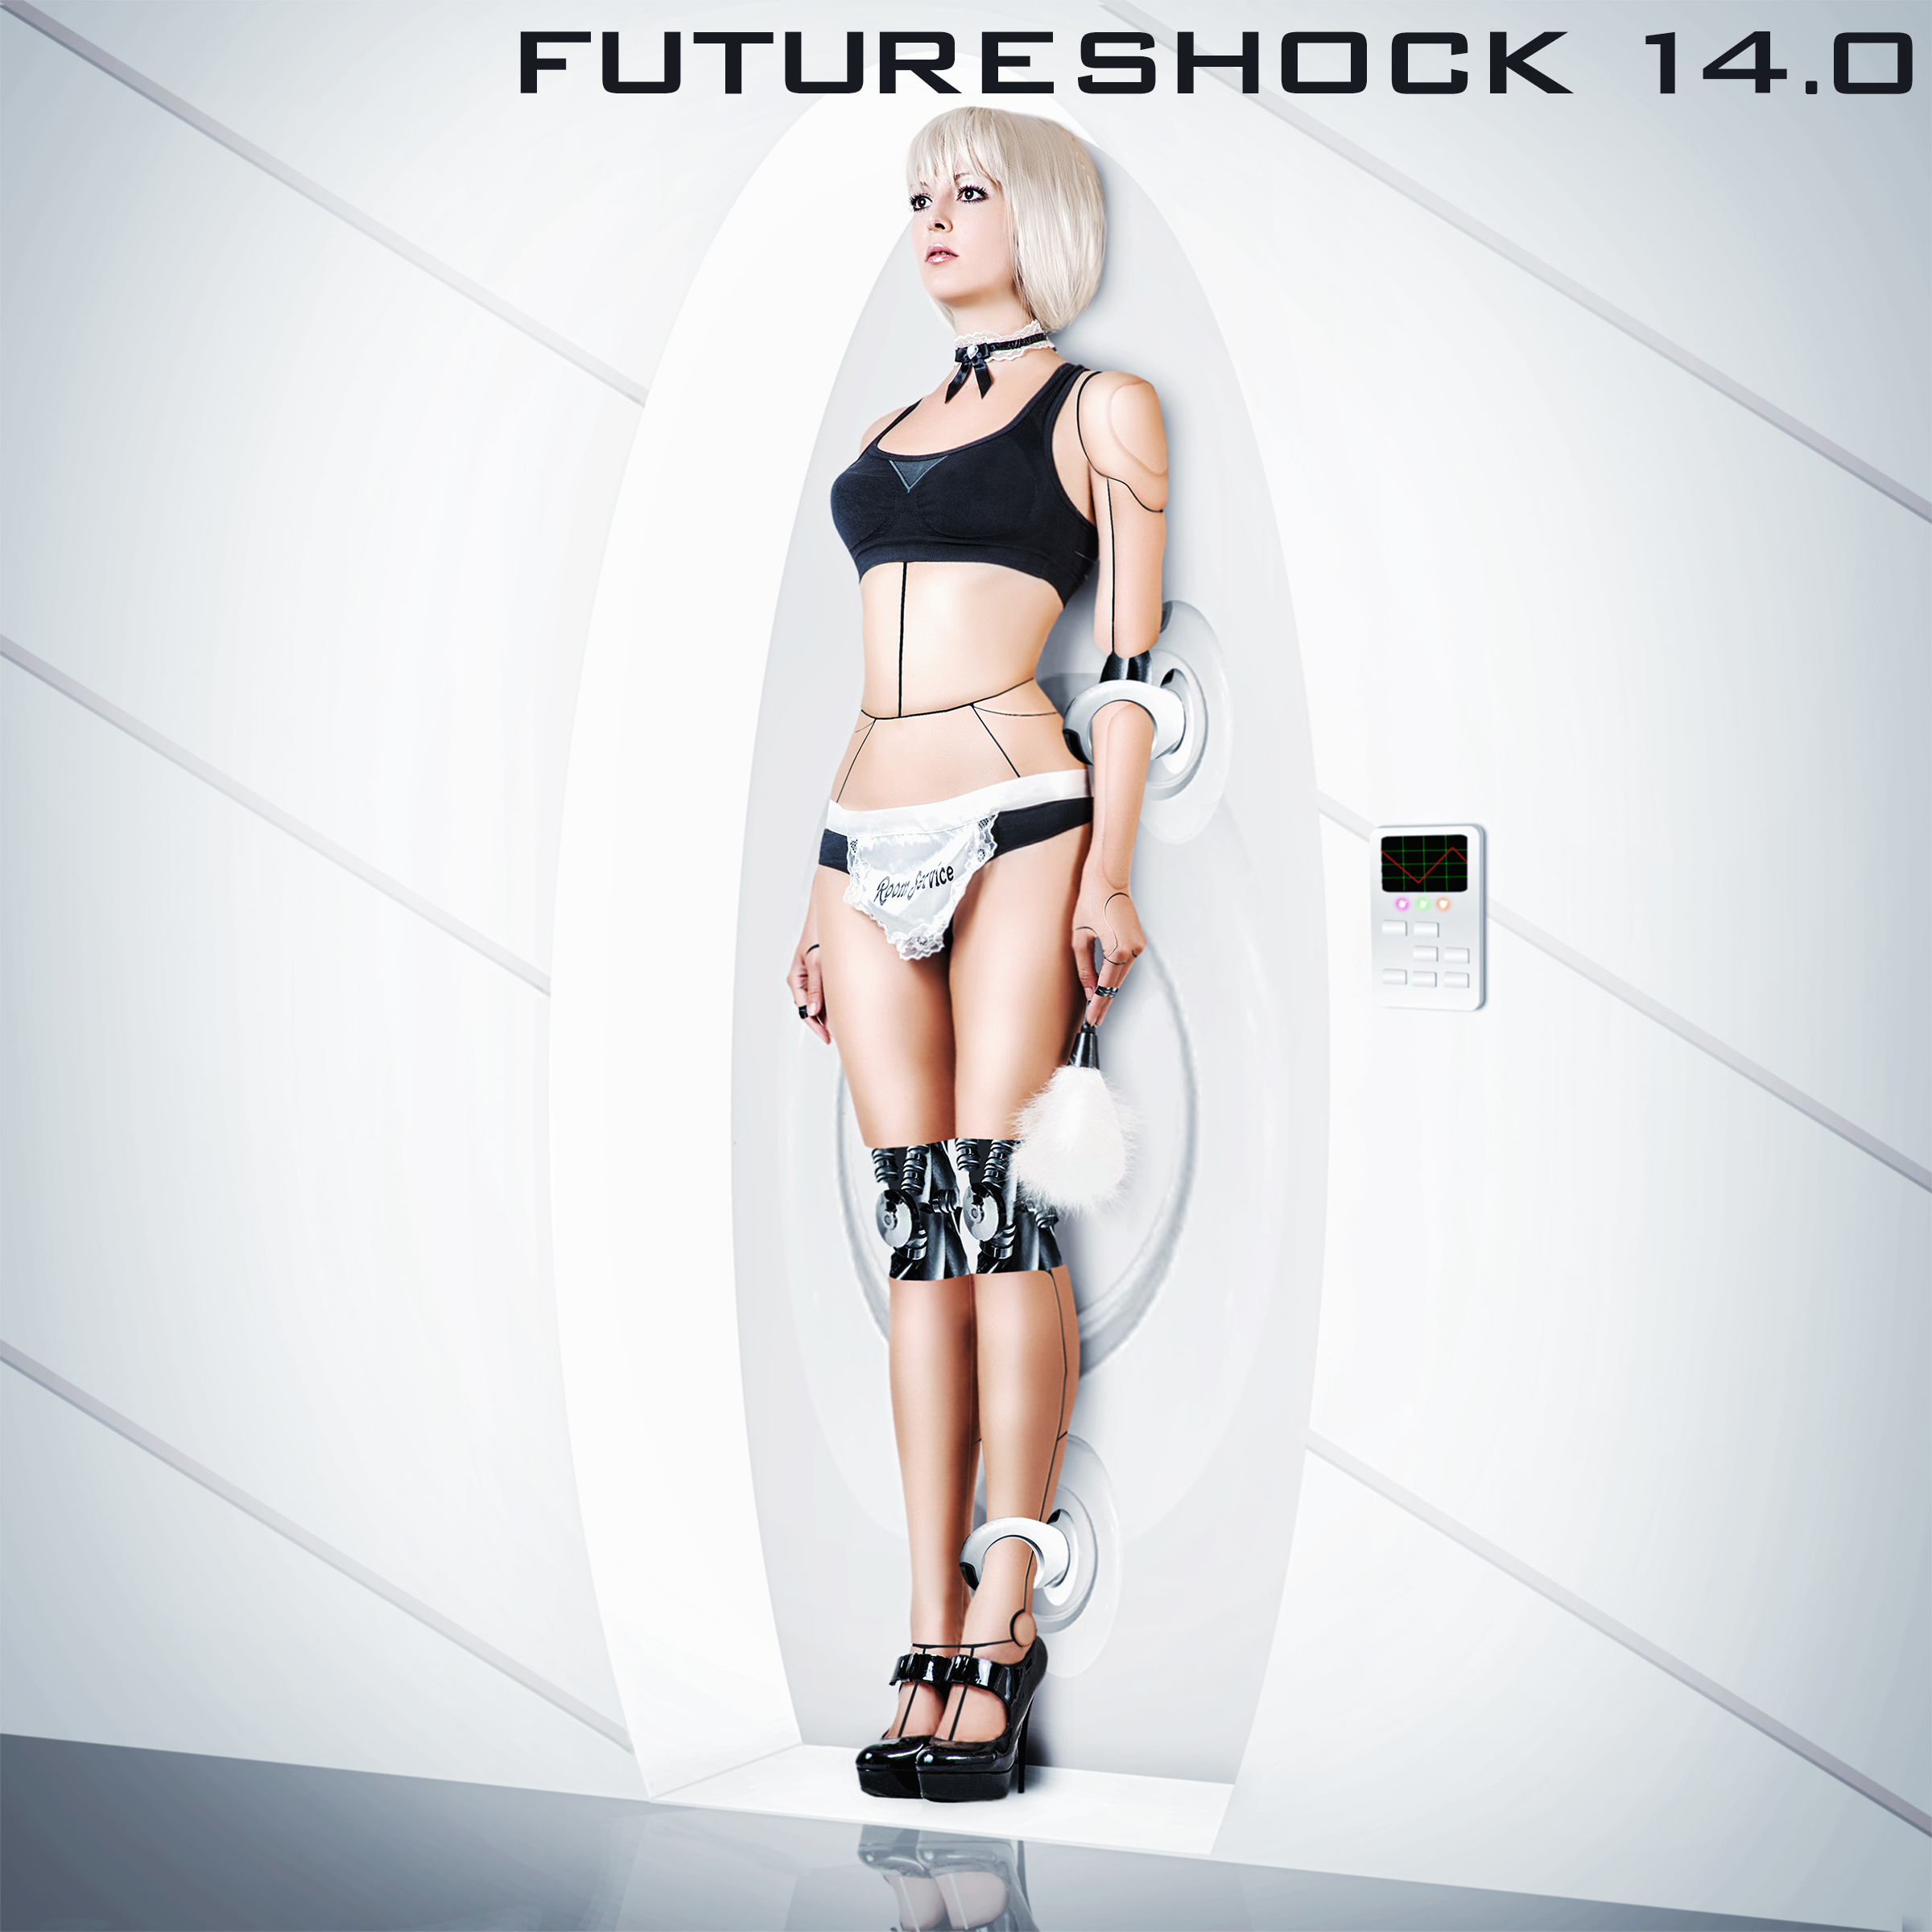 Futureshock 14.0